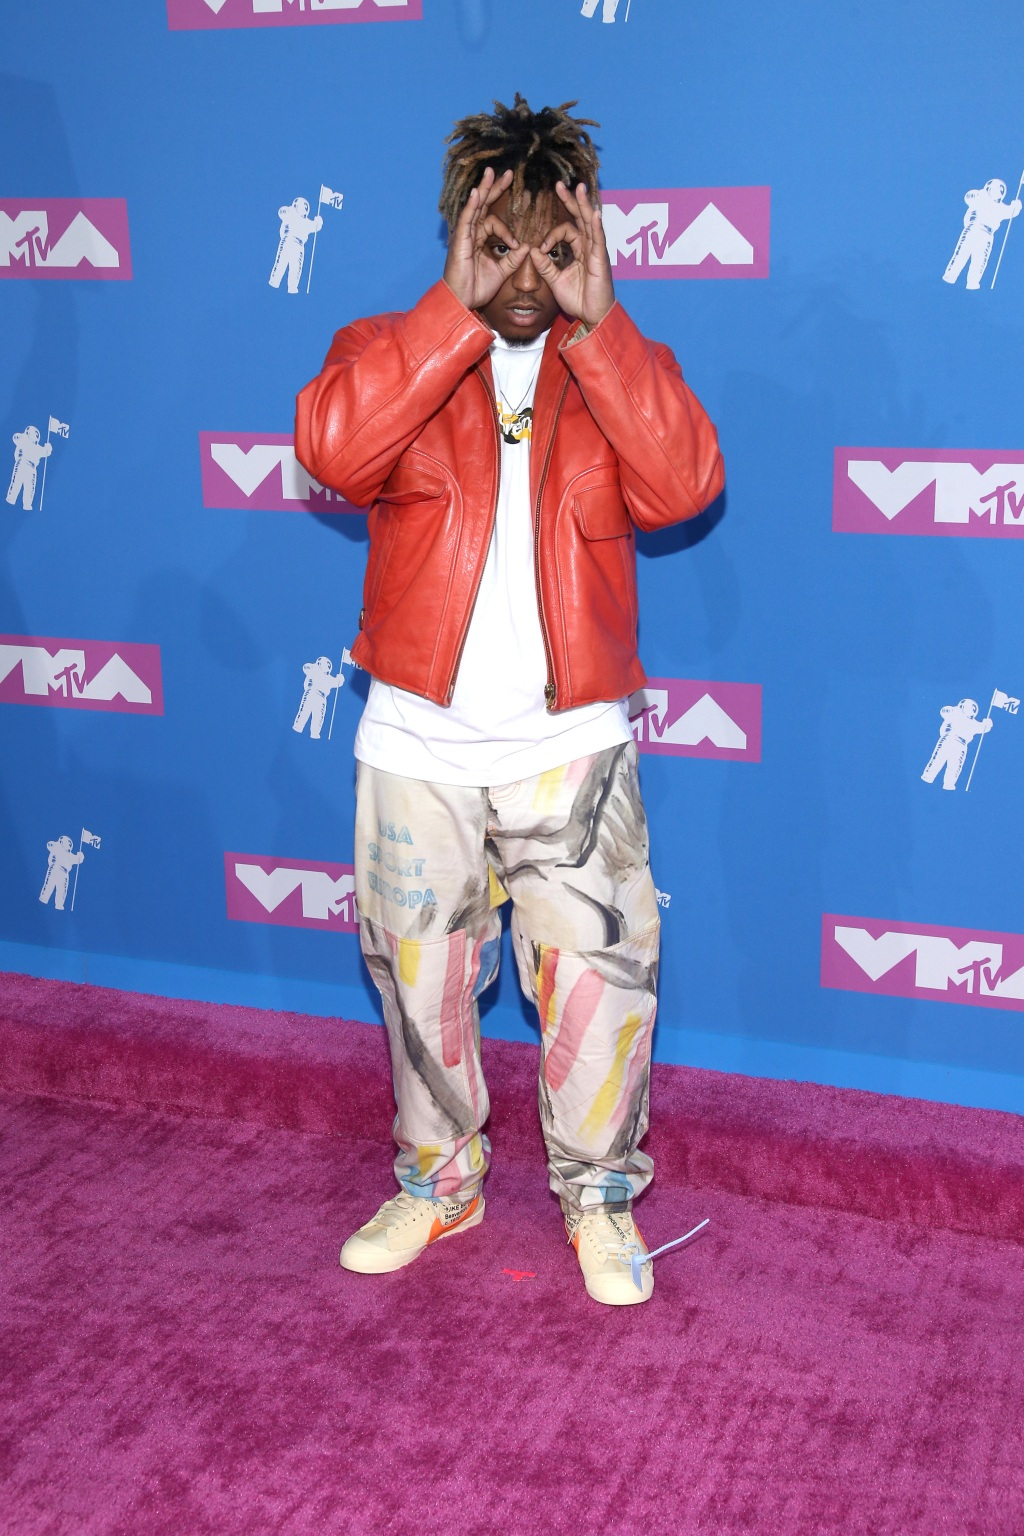 Juice WRLD attends the 2018 MTV Video Music Awards at Radio City Music Hall on August 20, 2018 in New York City. (Photo by Paul Zimmerman/WireImage)